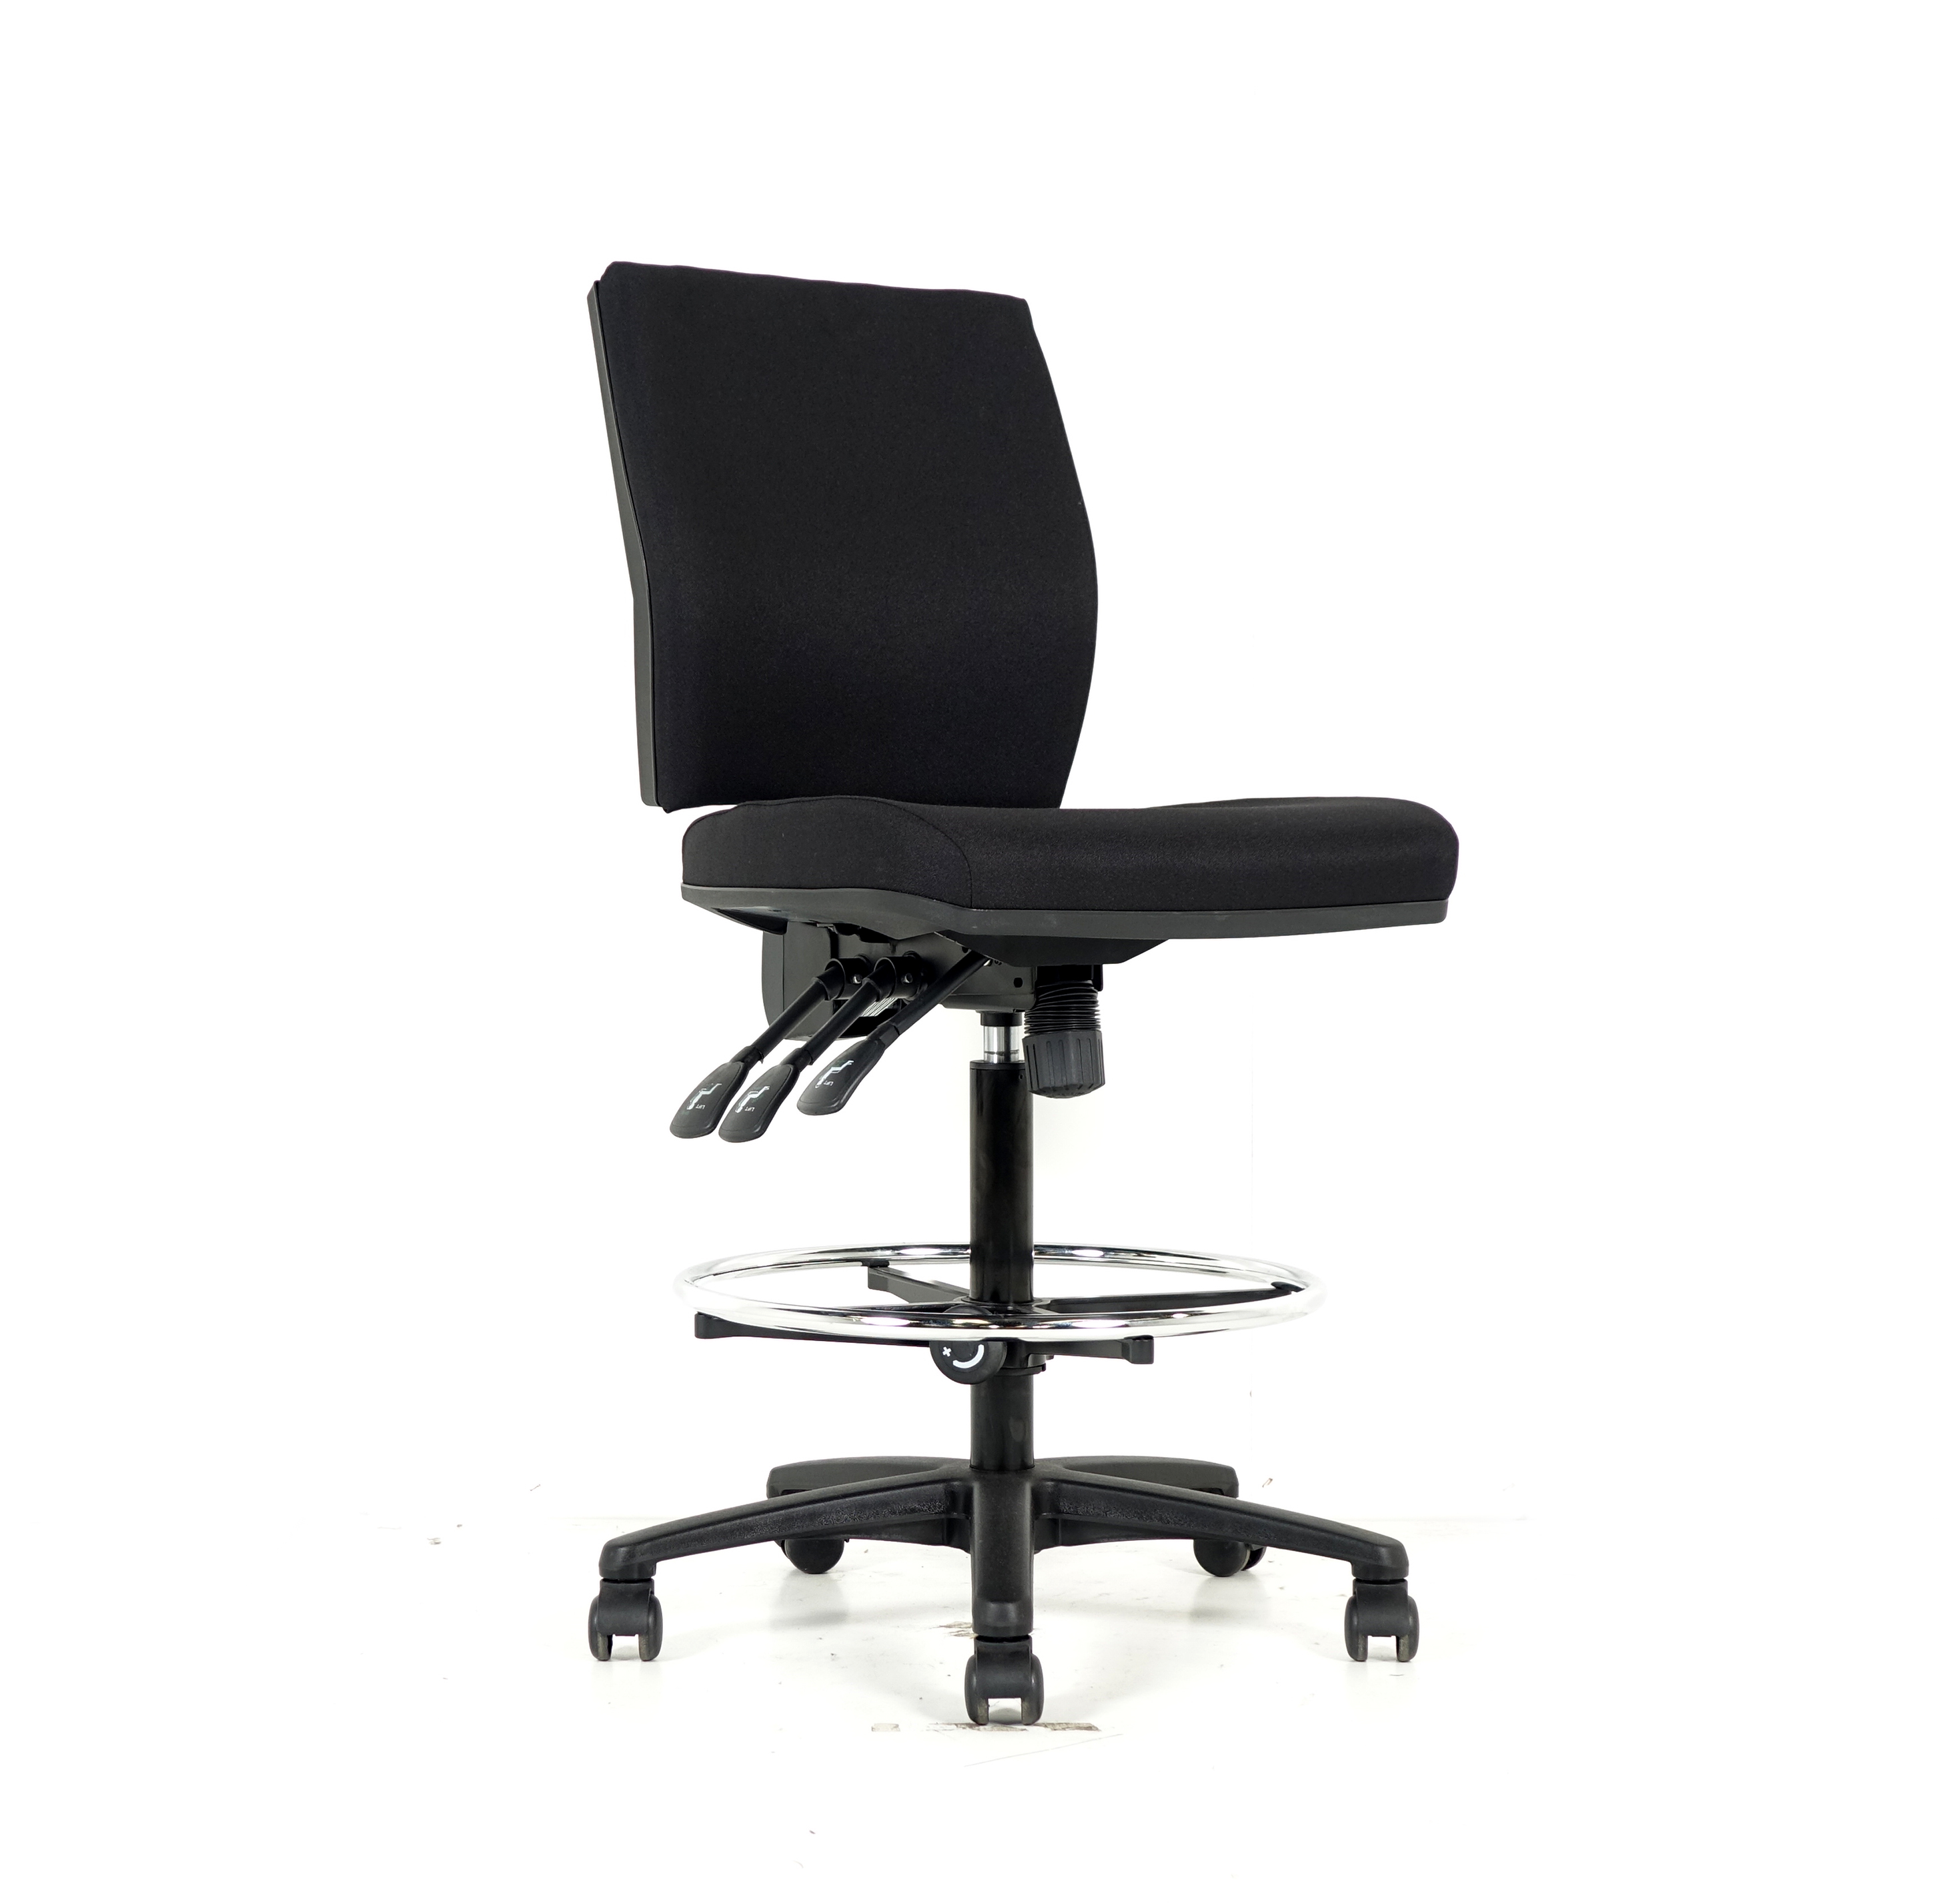 H80S Draughtsman Chair